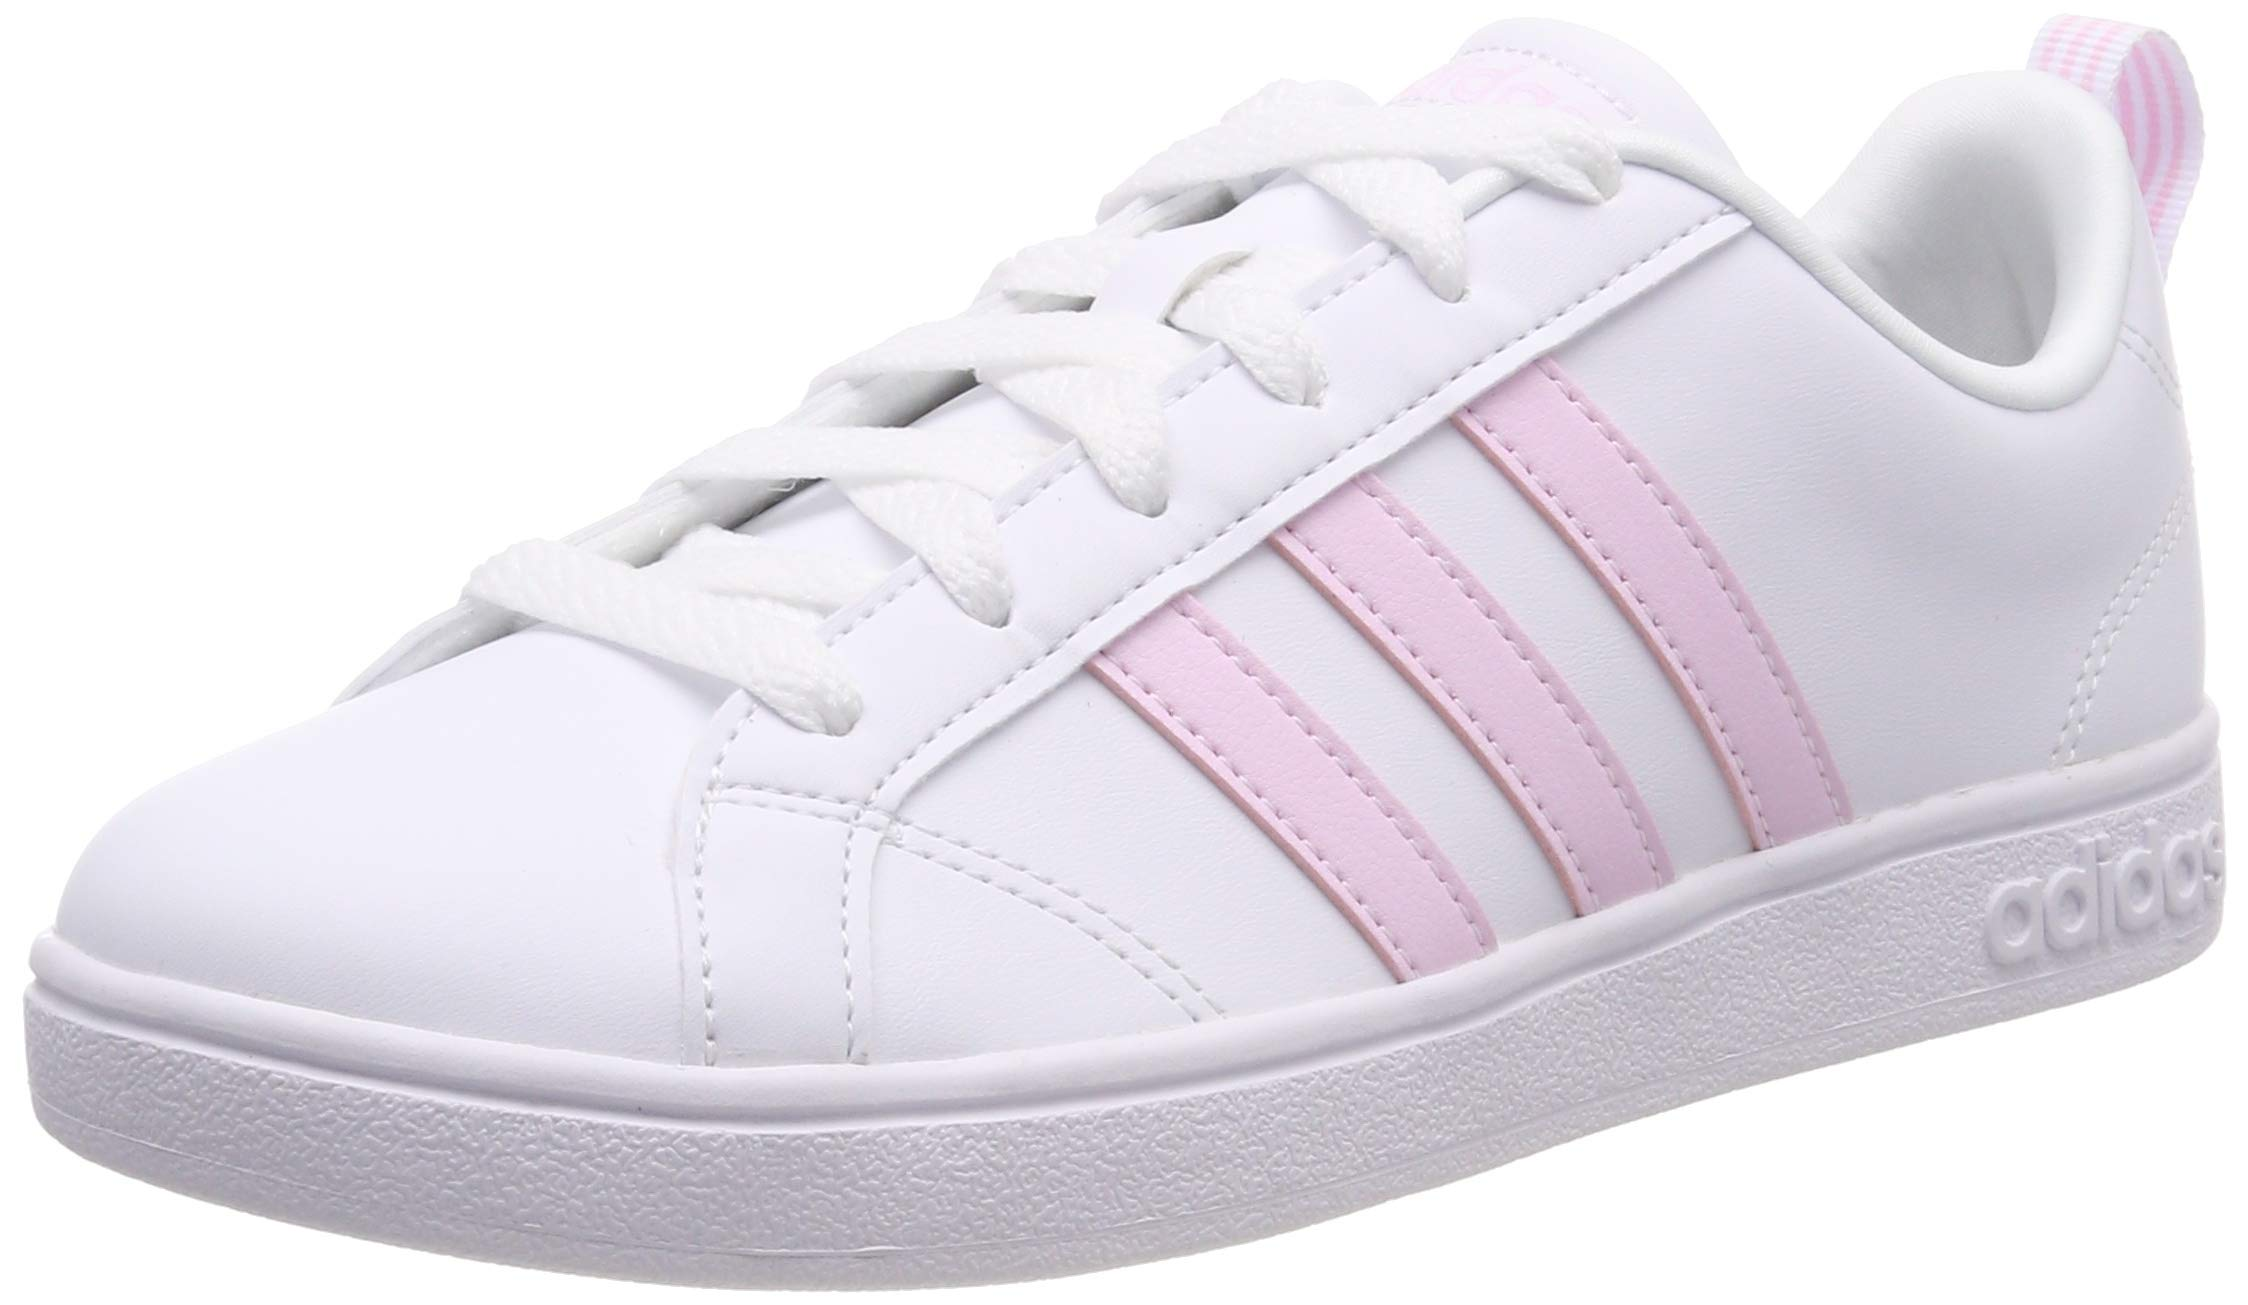 adidas Vs Advantage Scarpe da Tennis Donna - FACESHOPPING